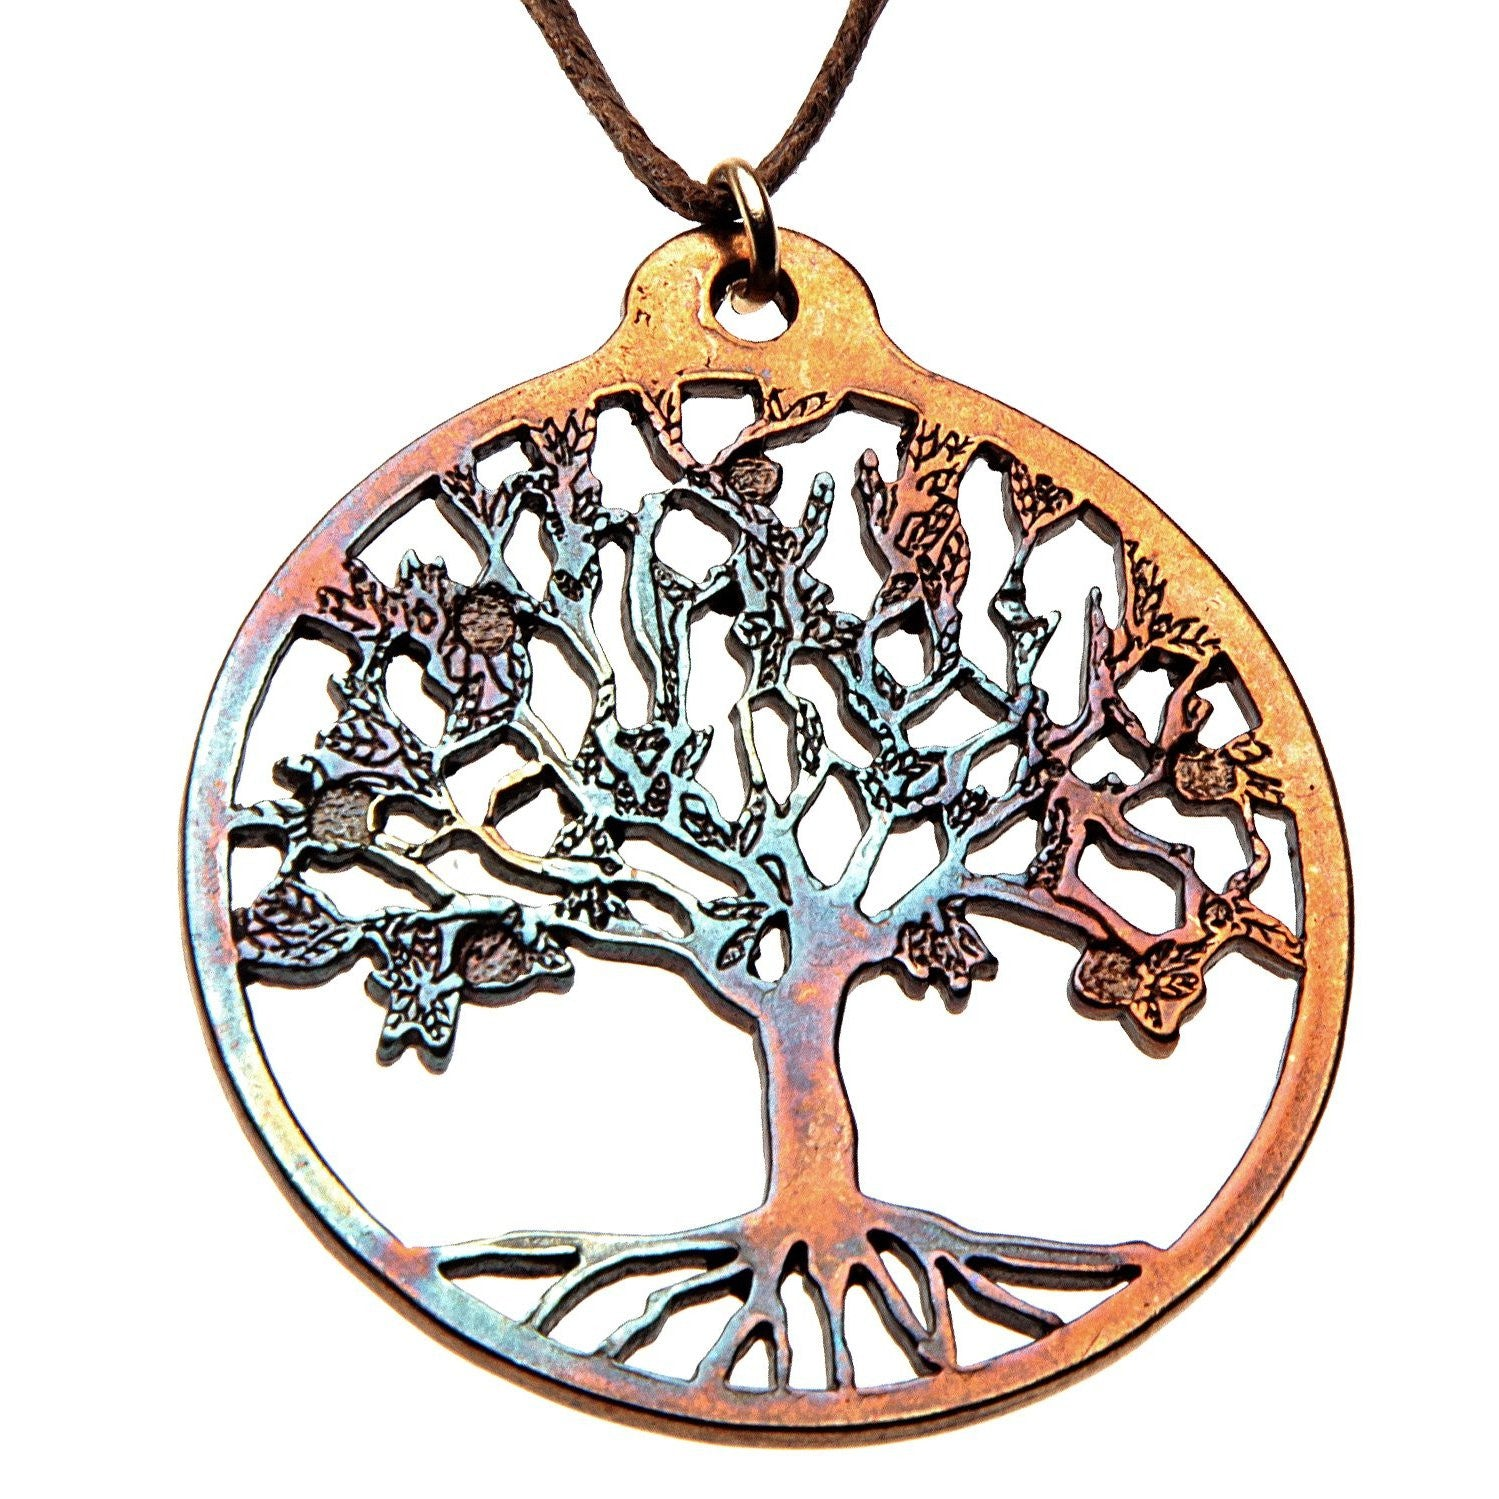 Tree of life ornament - Tree Of Life Iridescent Pendant Necklace On Adjustable Natural Fiber Cord